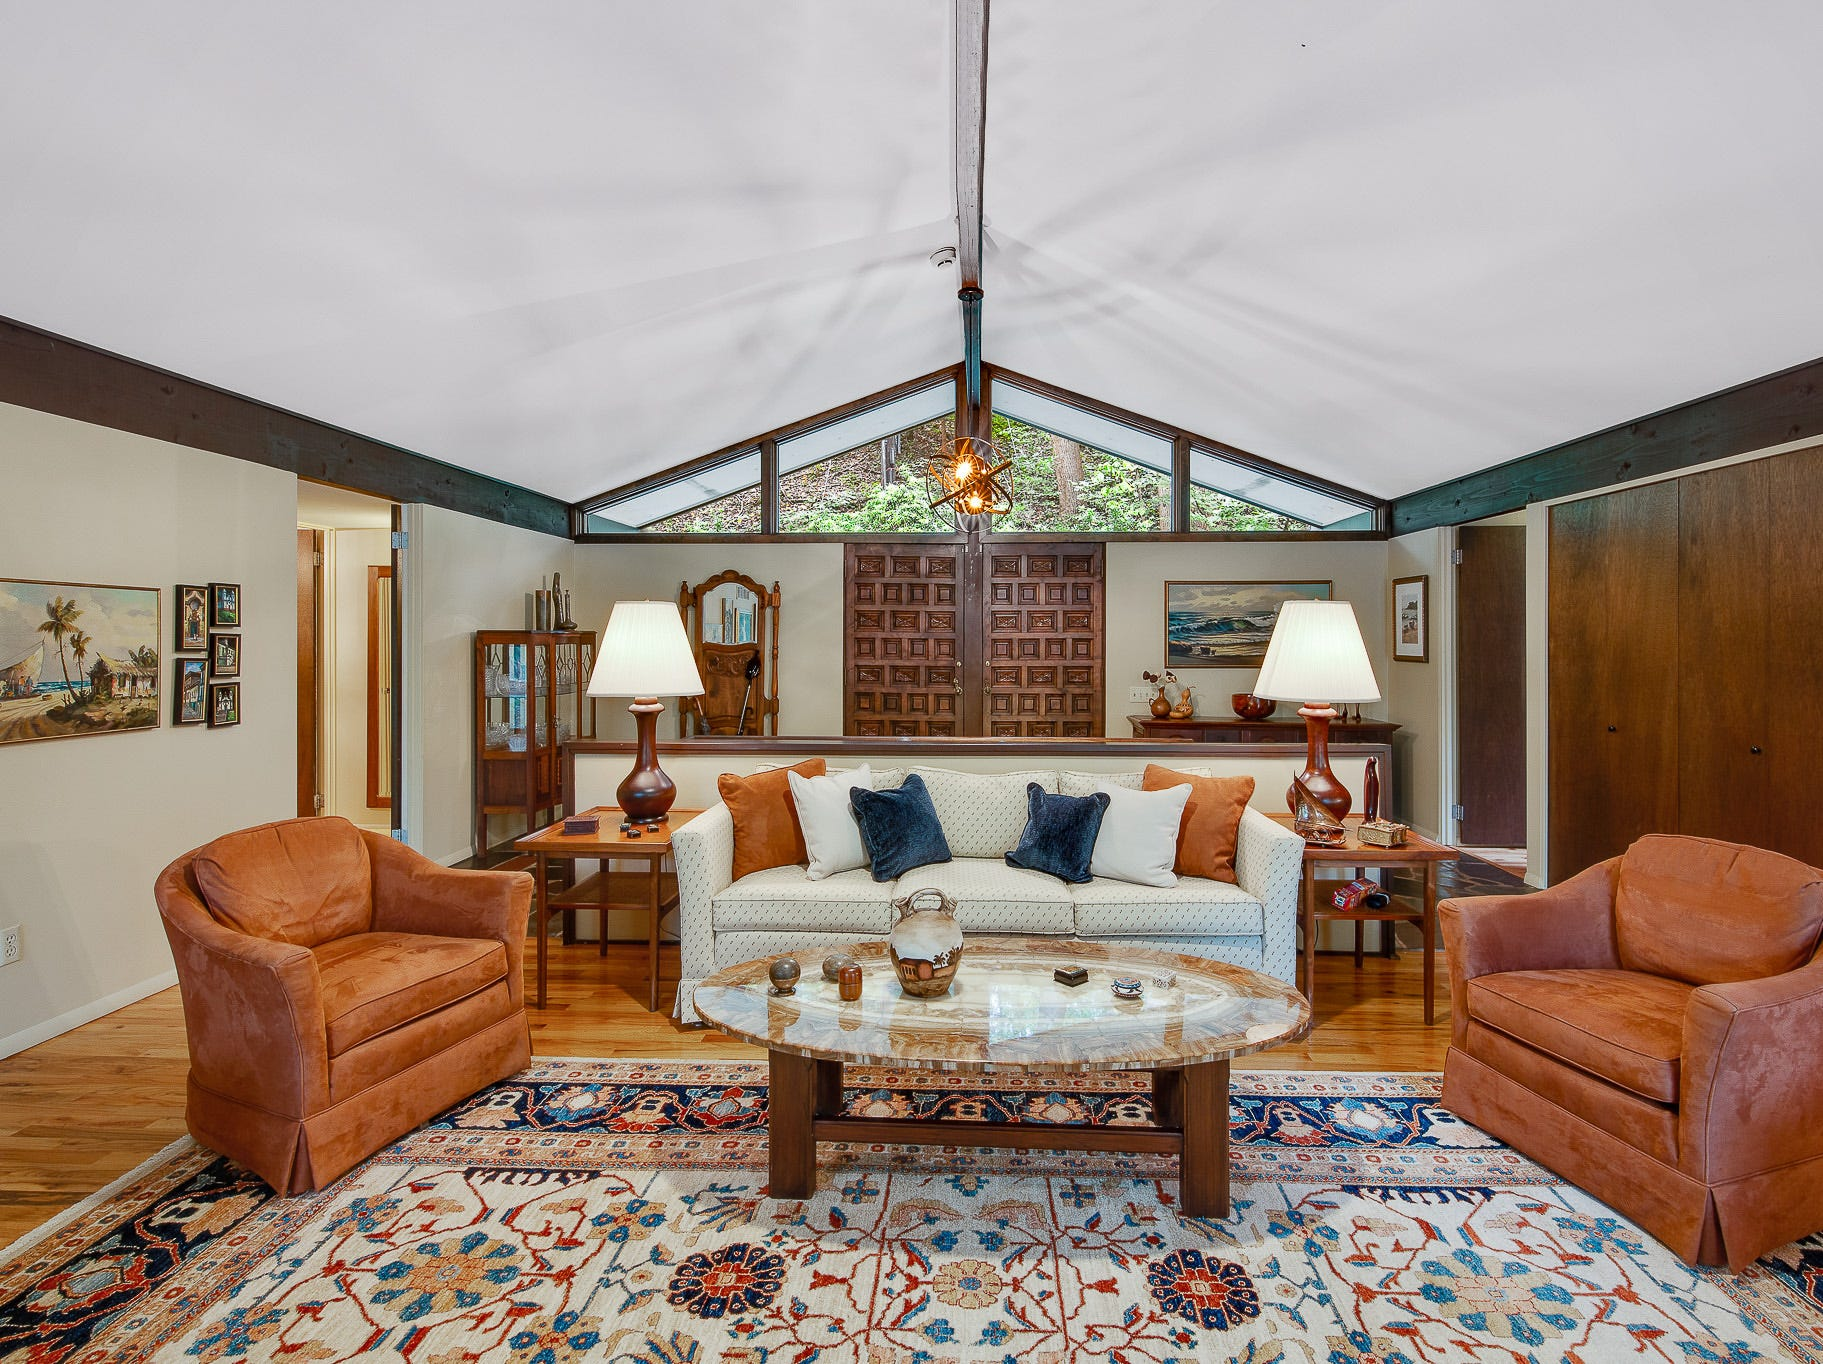 The carved wood doors from Spain open into the vaulted living area at 110 Thissell in Greenville.